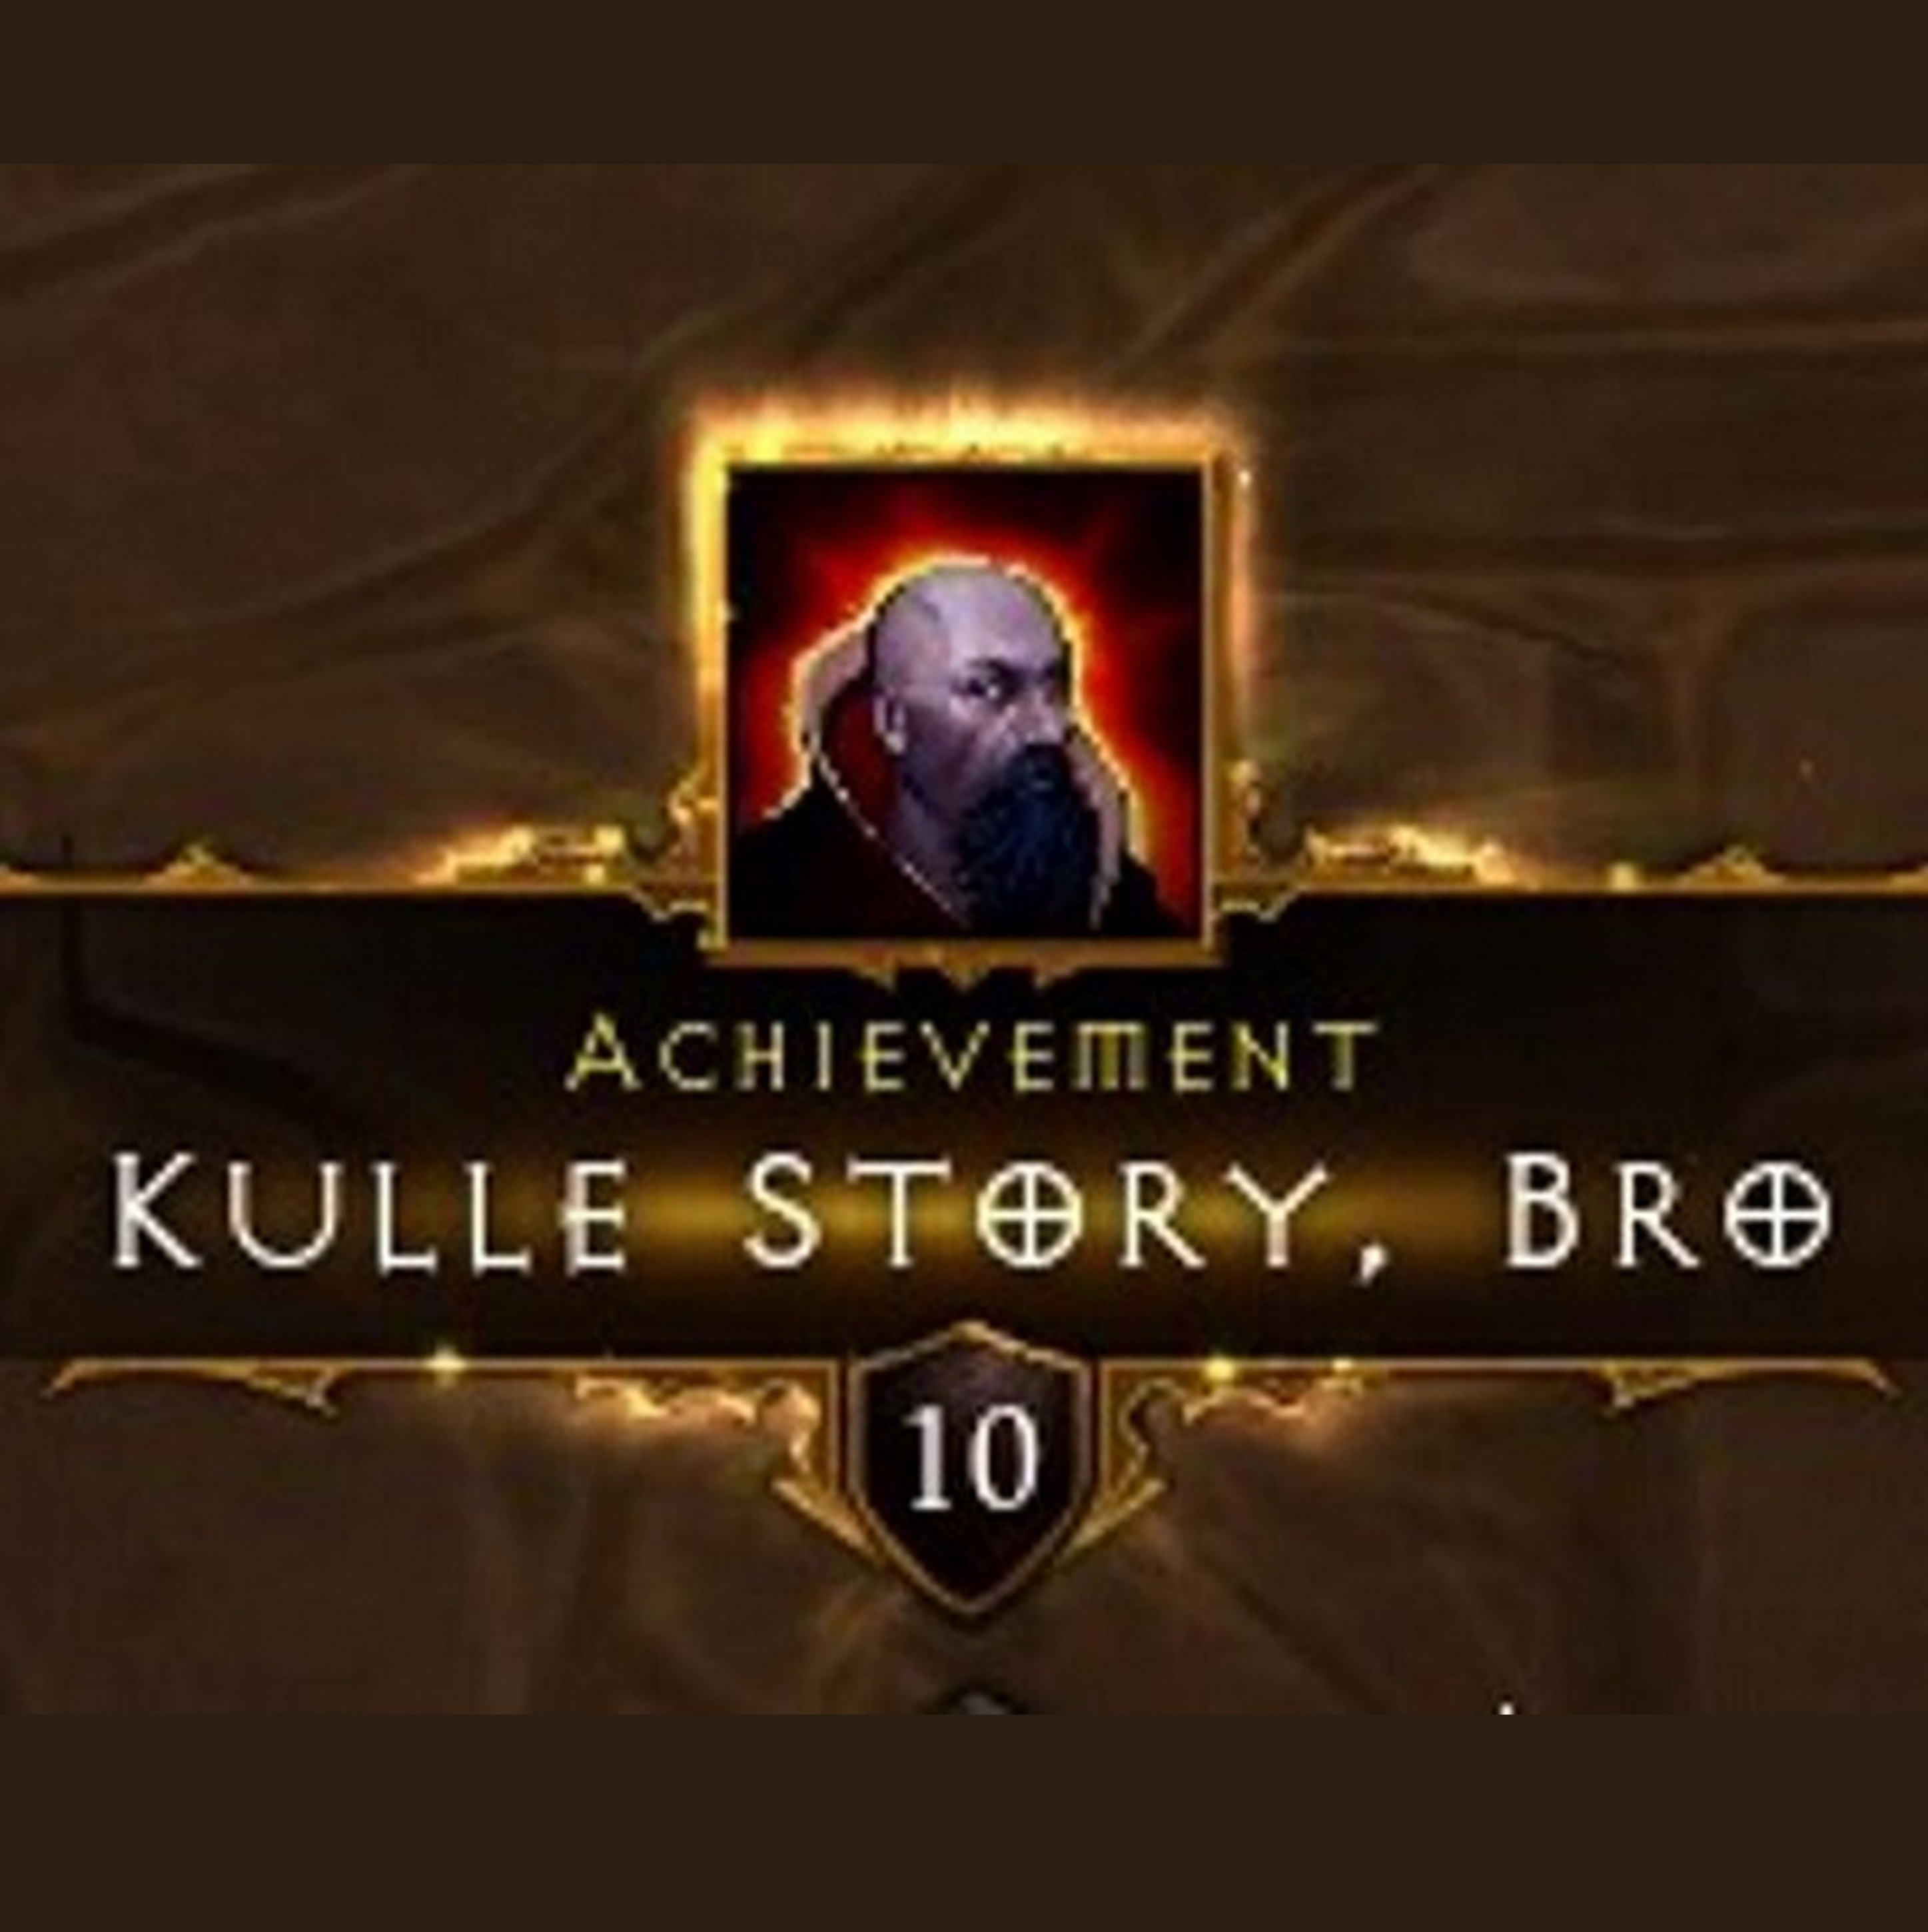 Kulle Story Bro - A Diablo 3 Podcast Episode 40